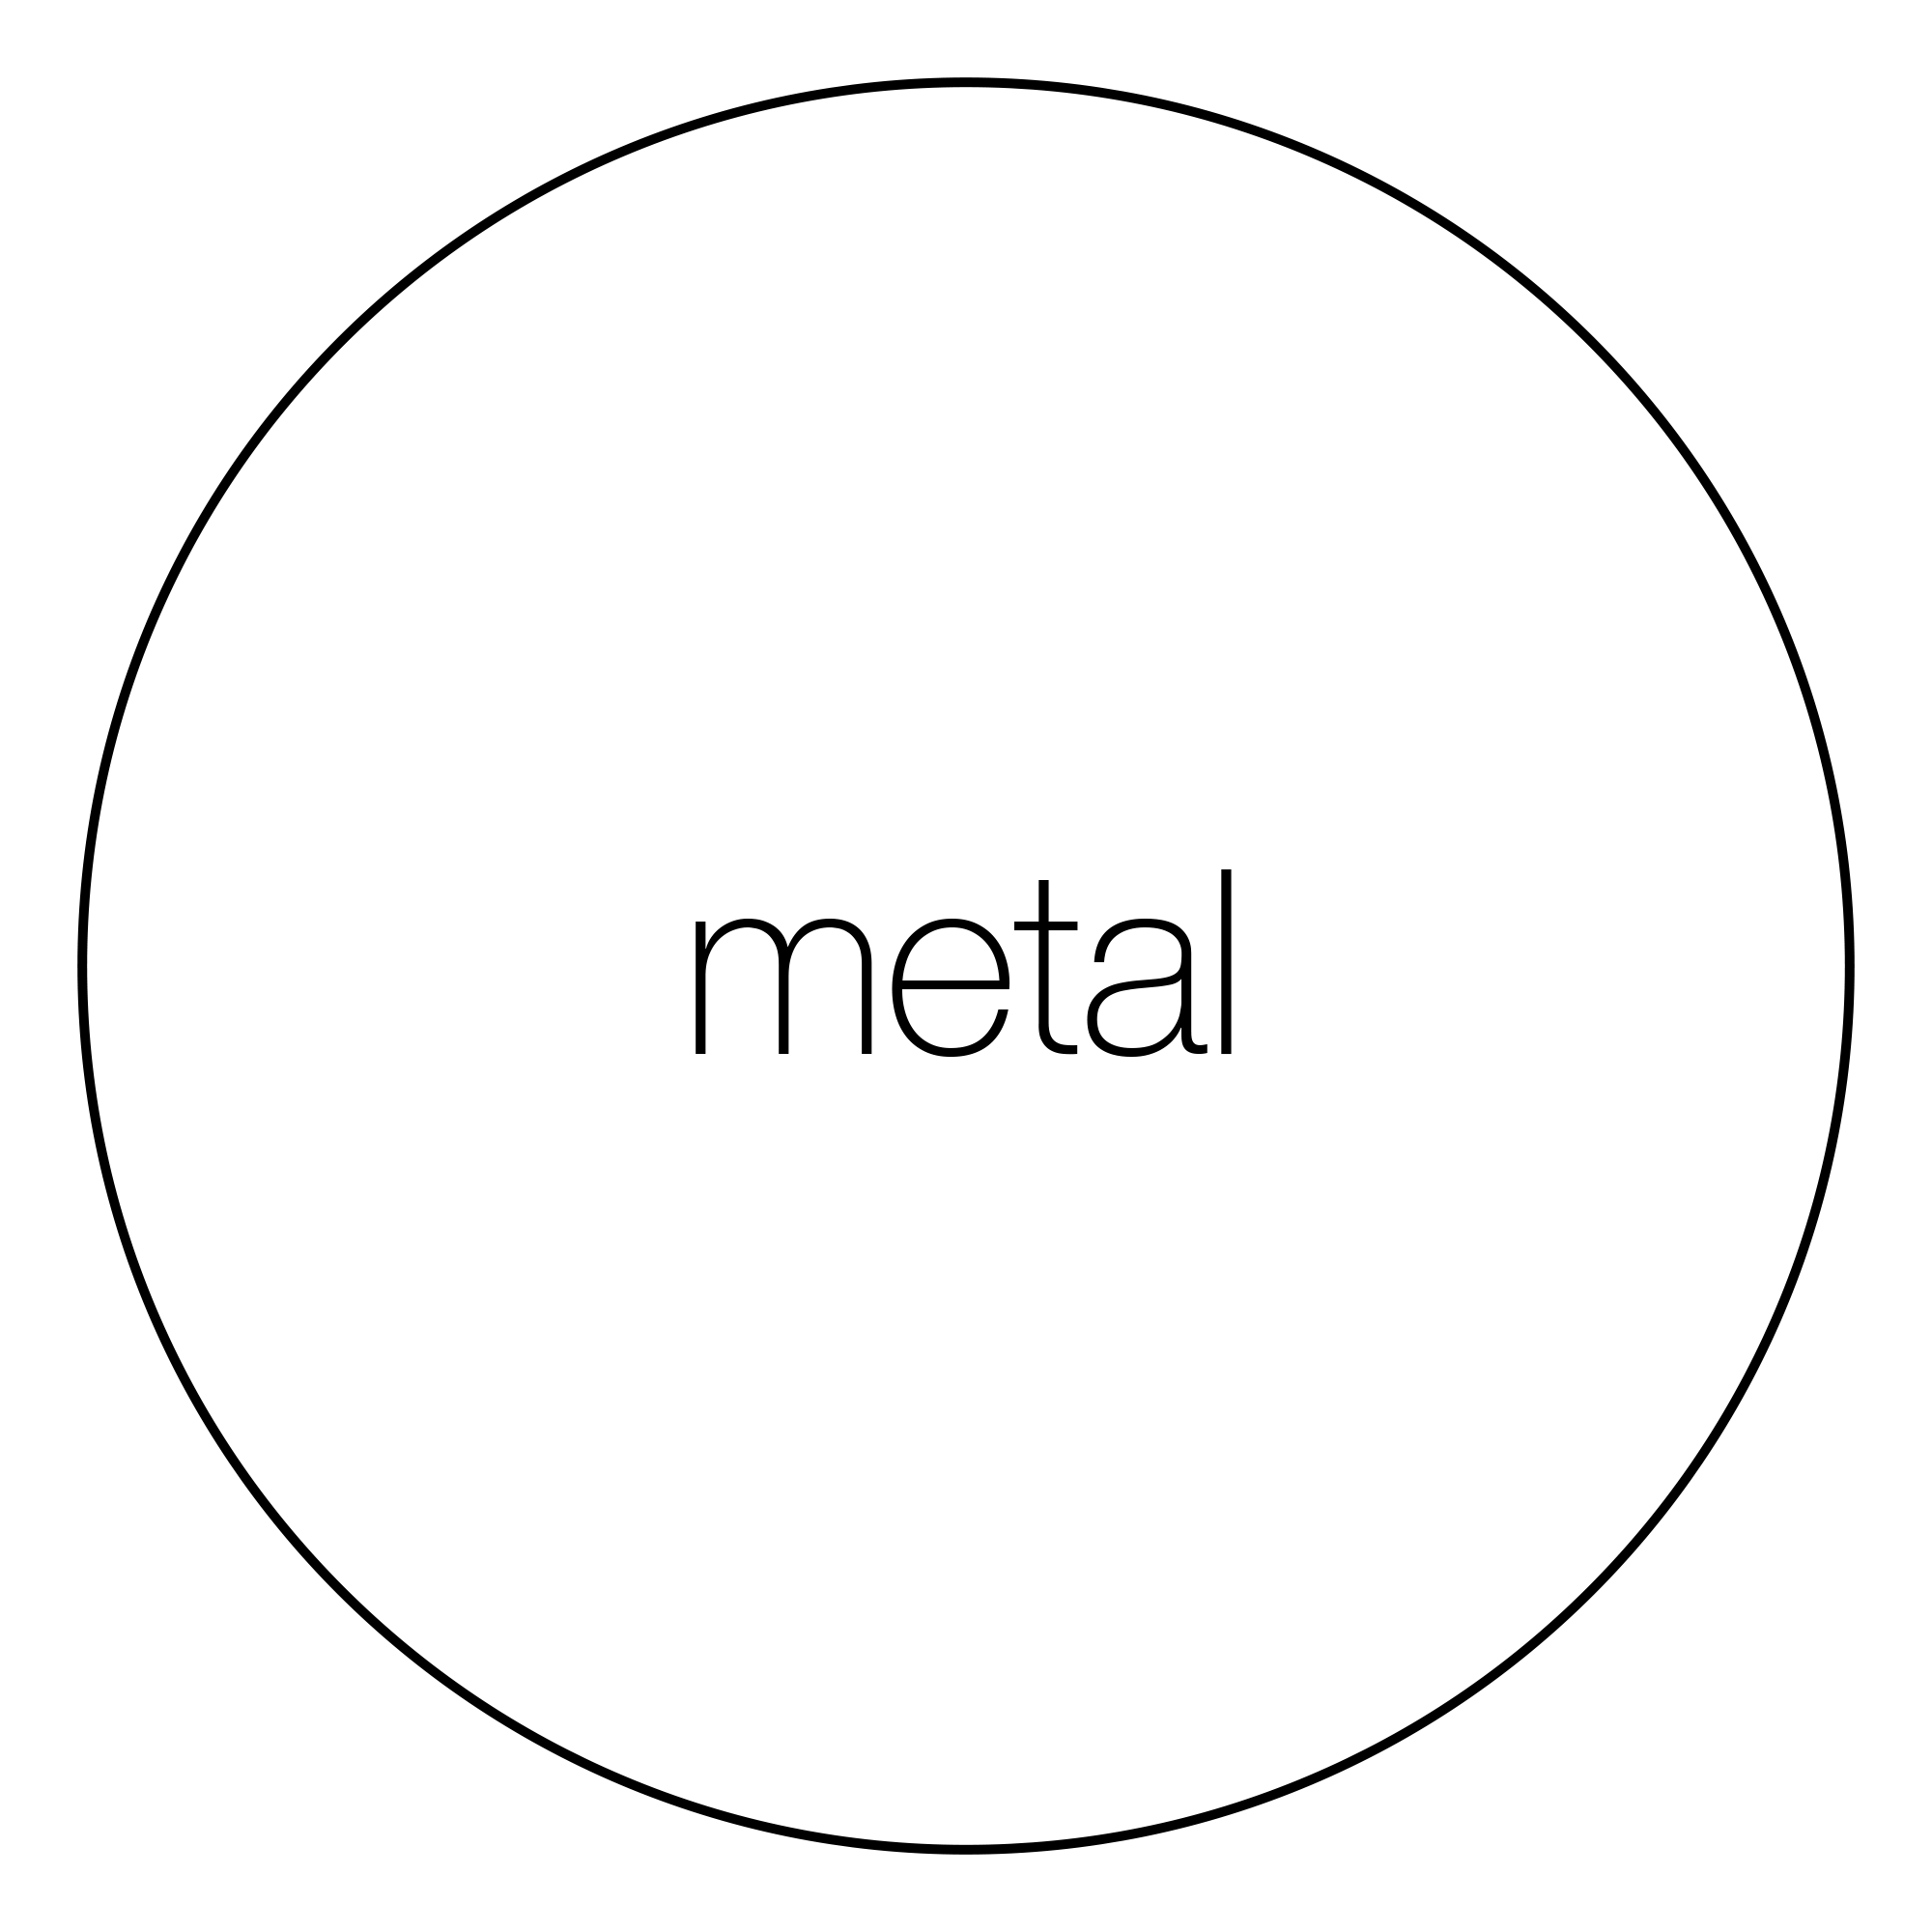 attribute-material-metal